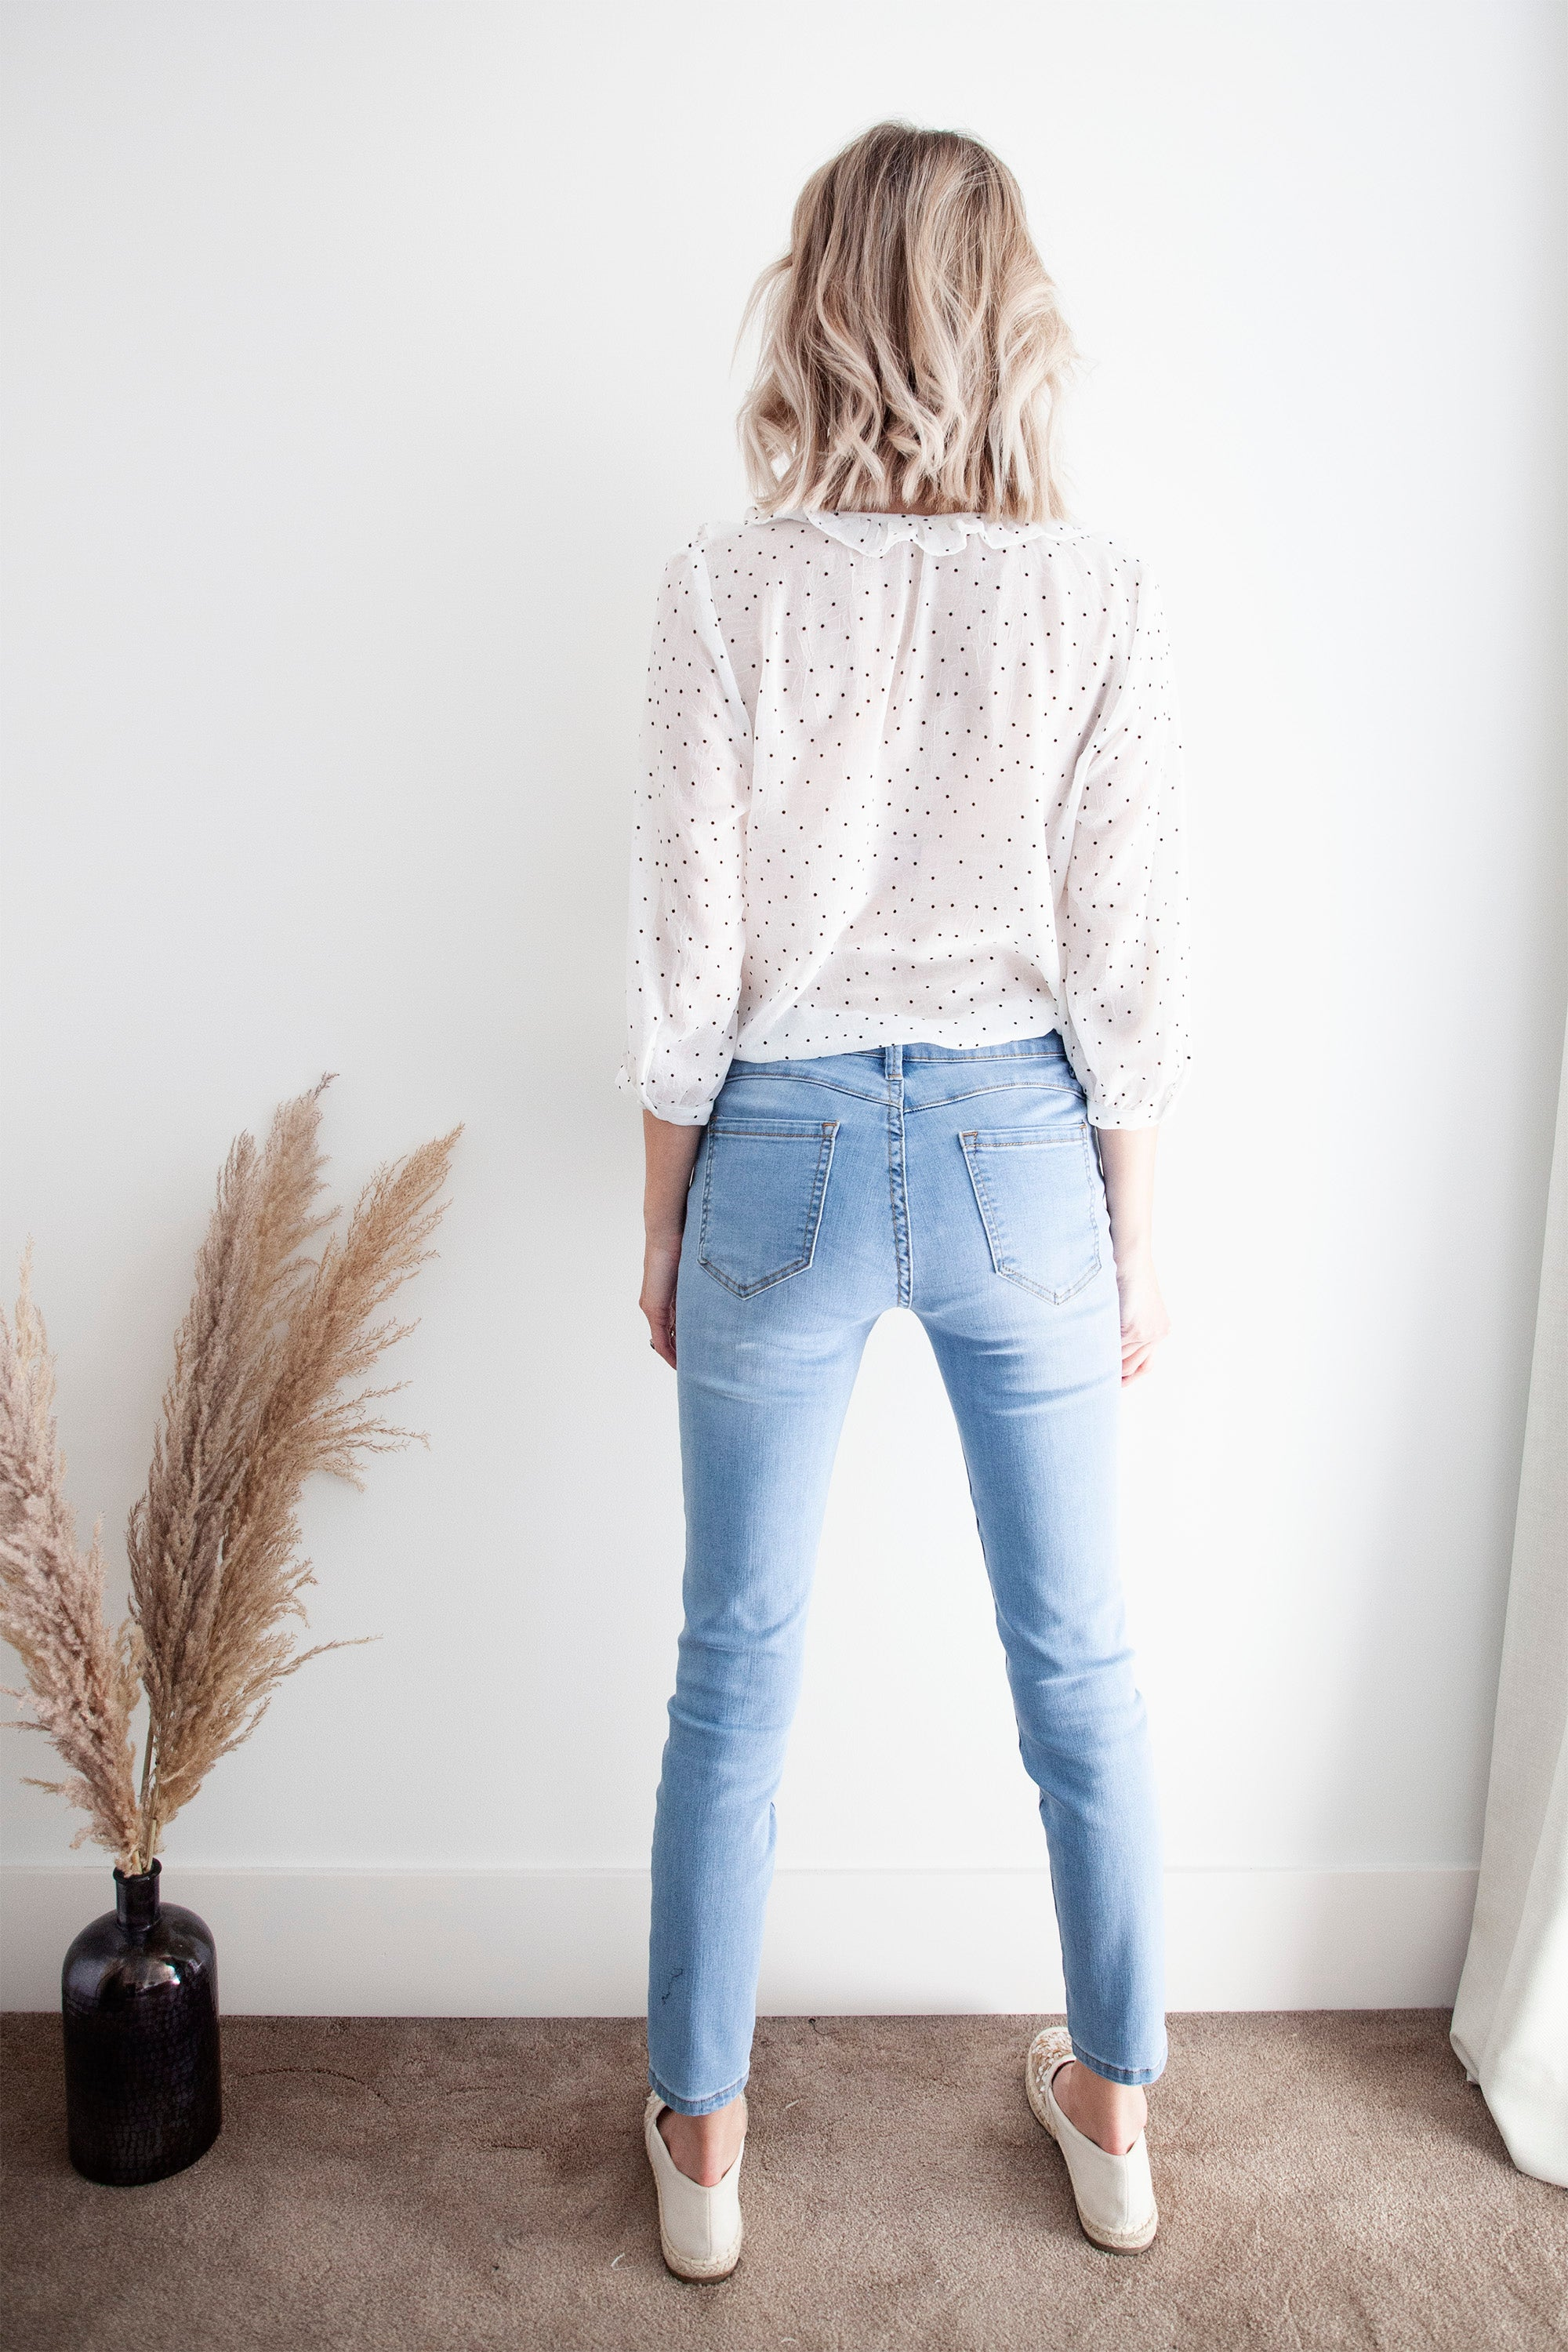 The Sophisticated Blue - Jeans